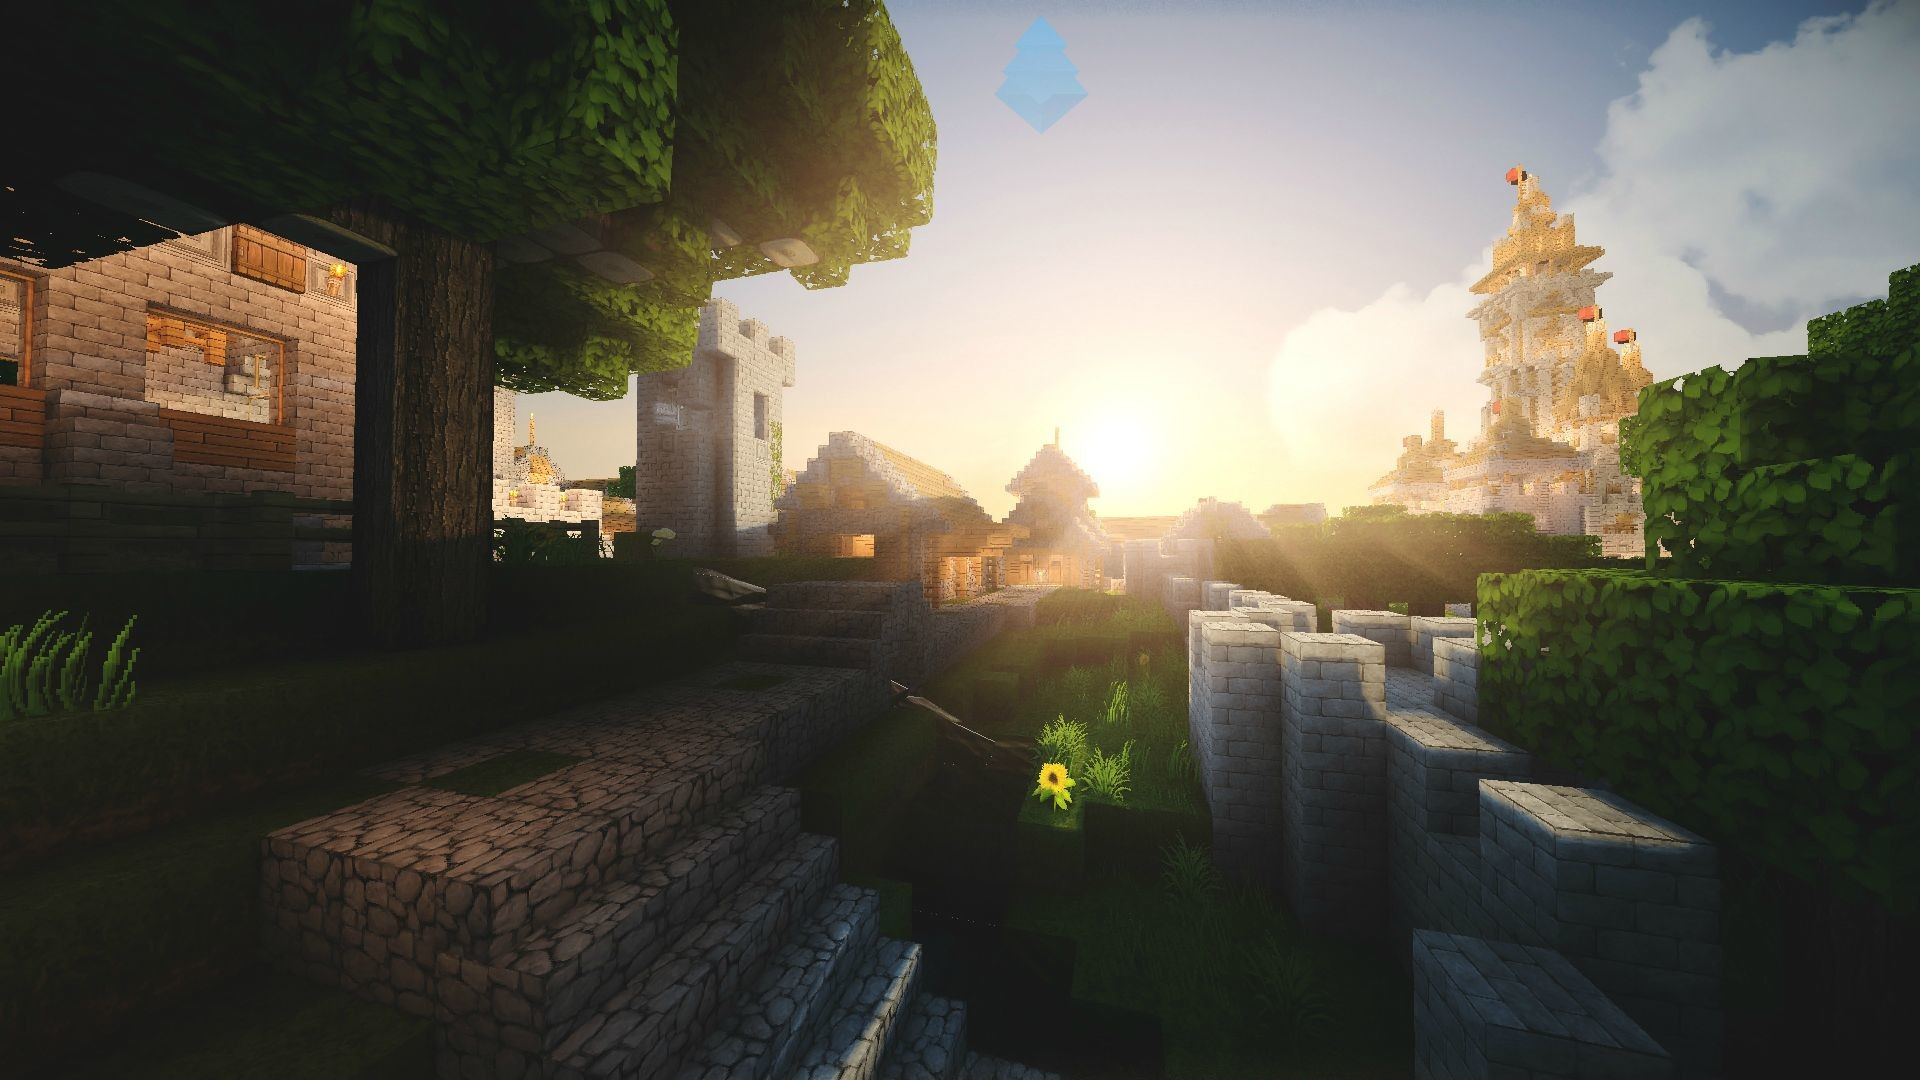 Epic minecraft background 67 images - Epic wallpapers 2560x1440 ...